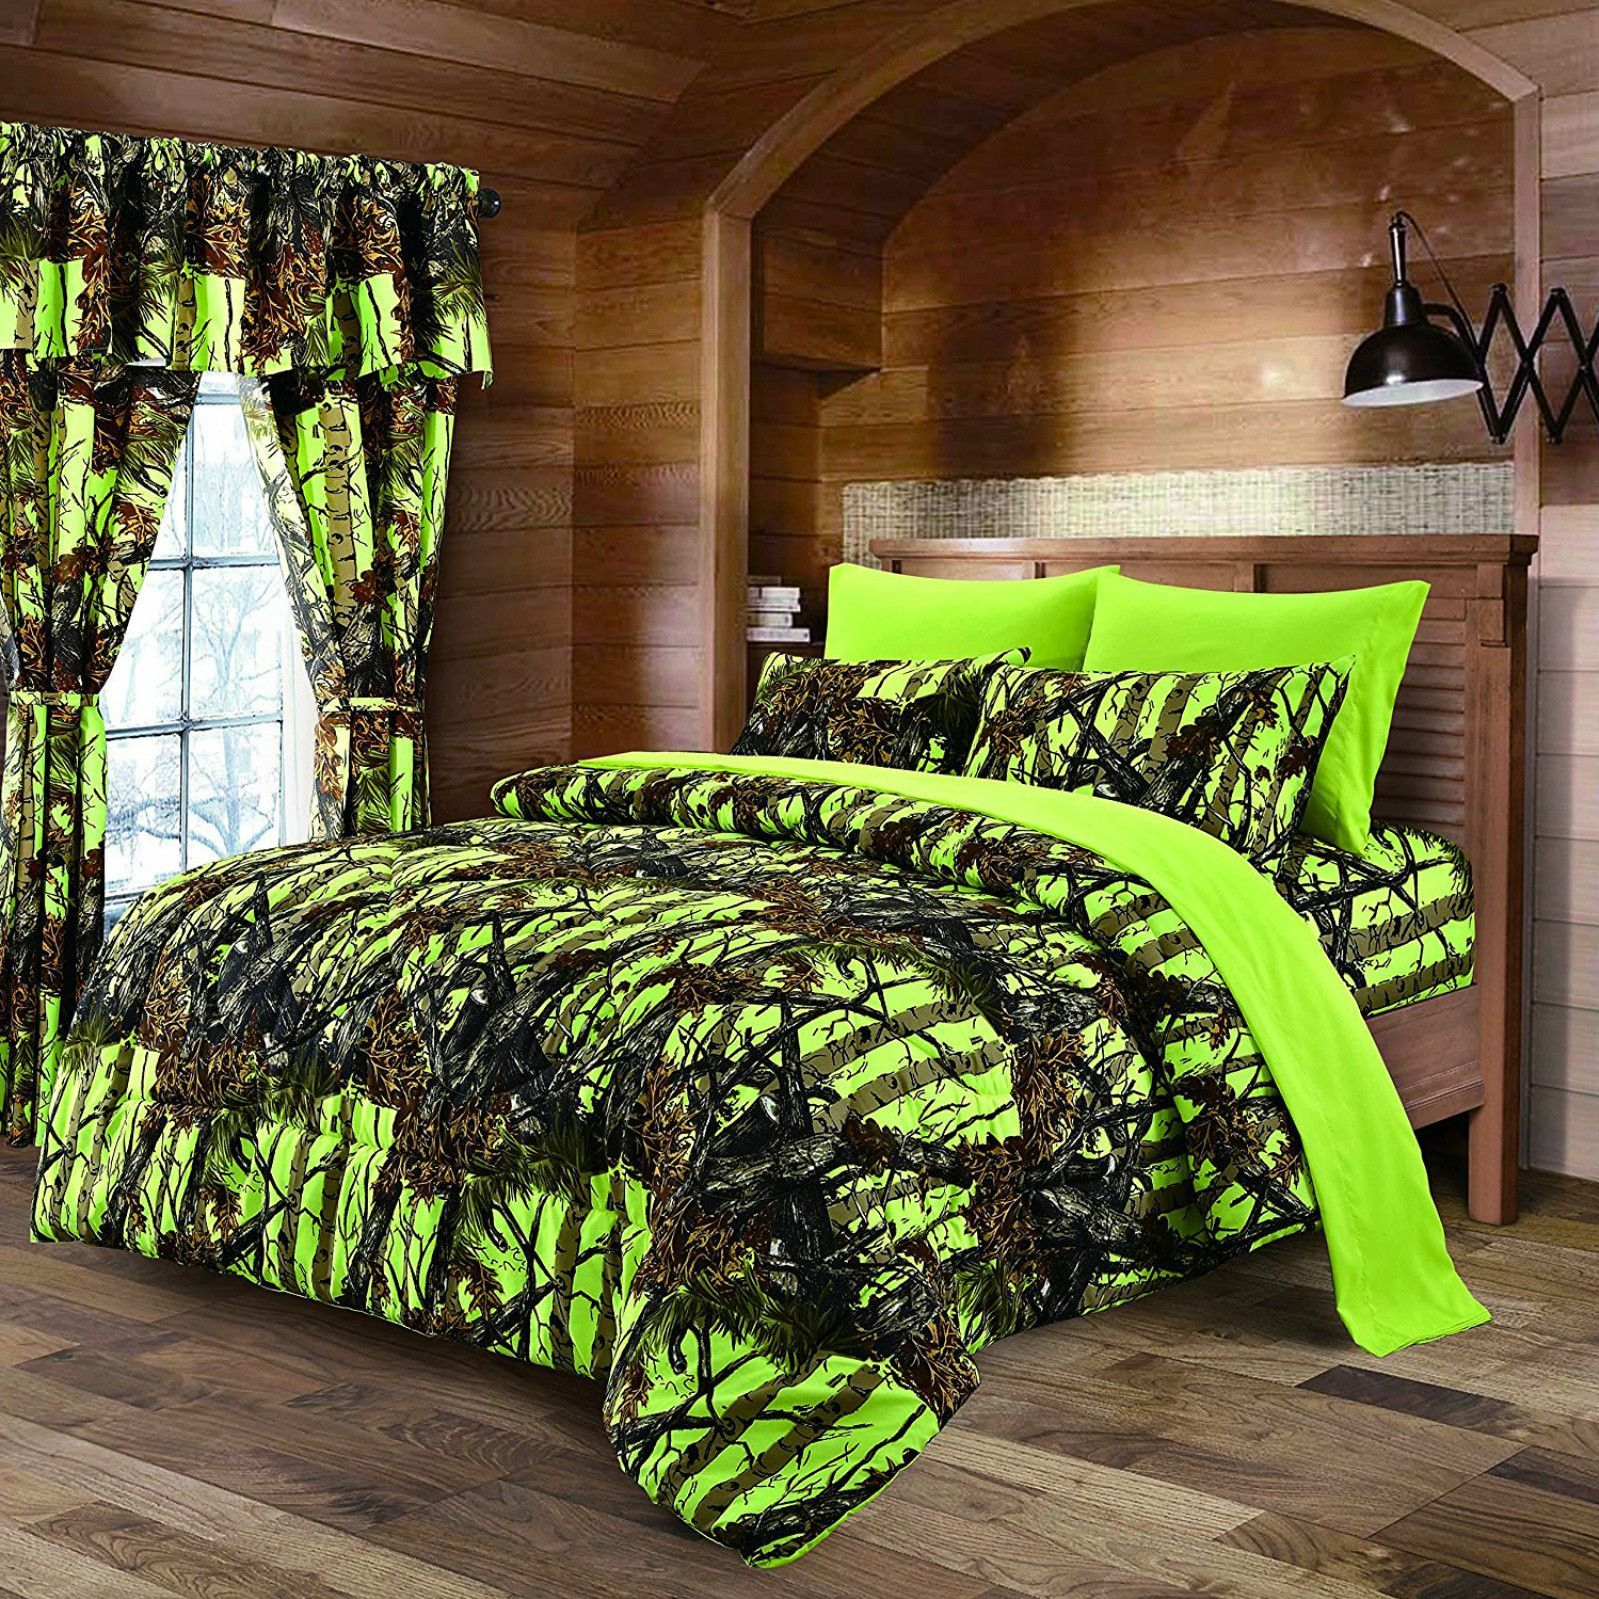 Kids Camo Bedding Boys Comforter Sets Girls Sheets Adults